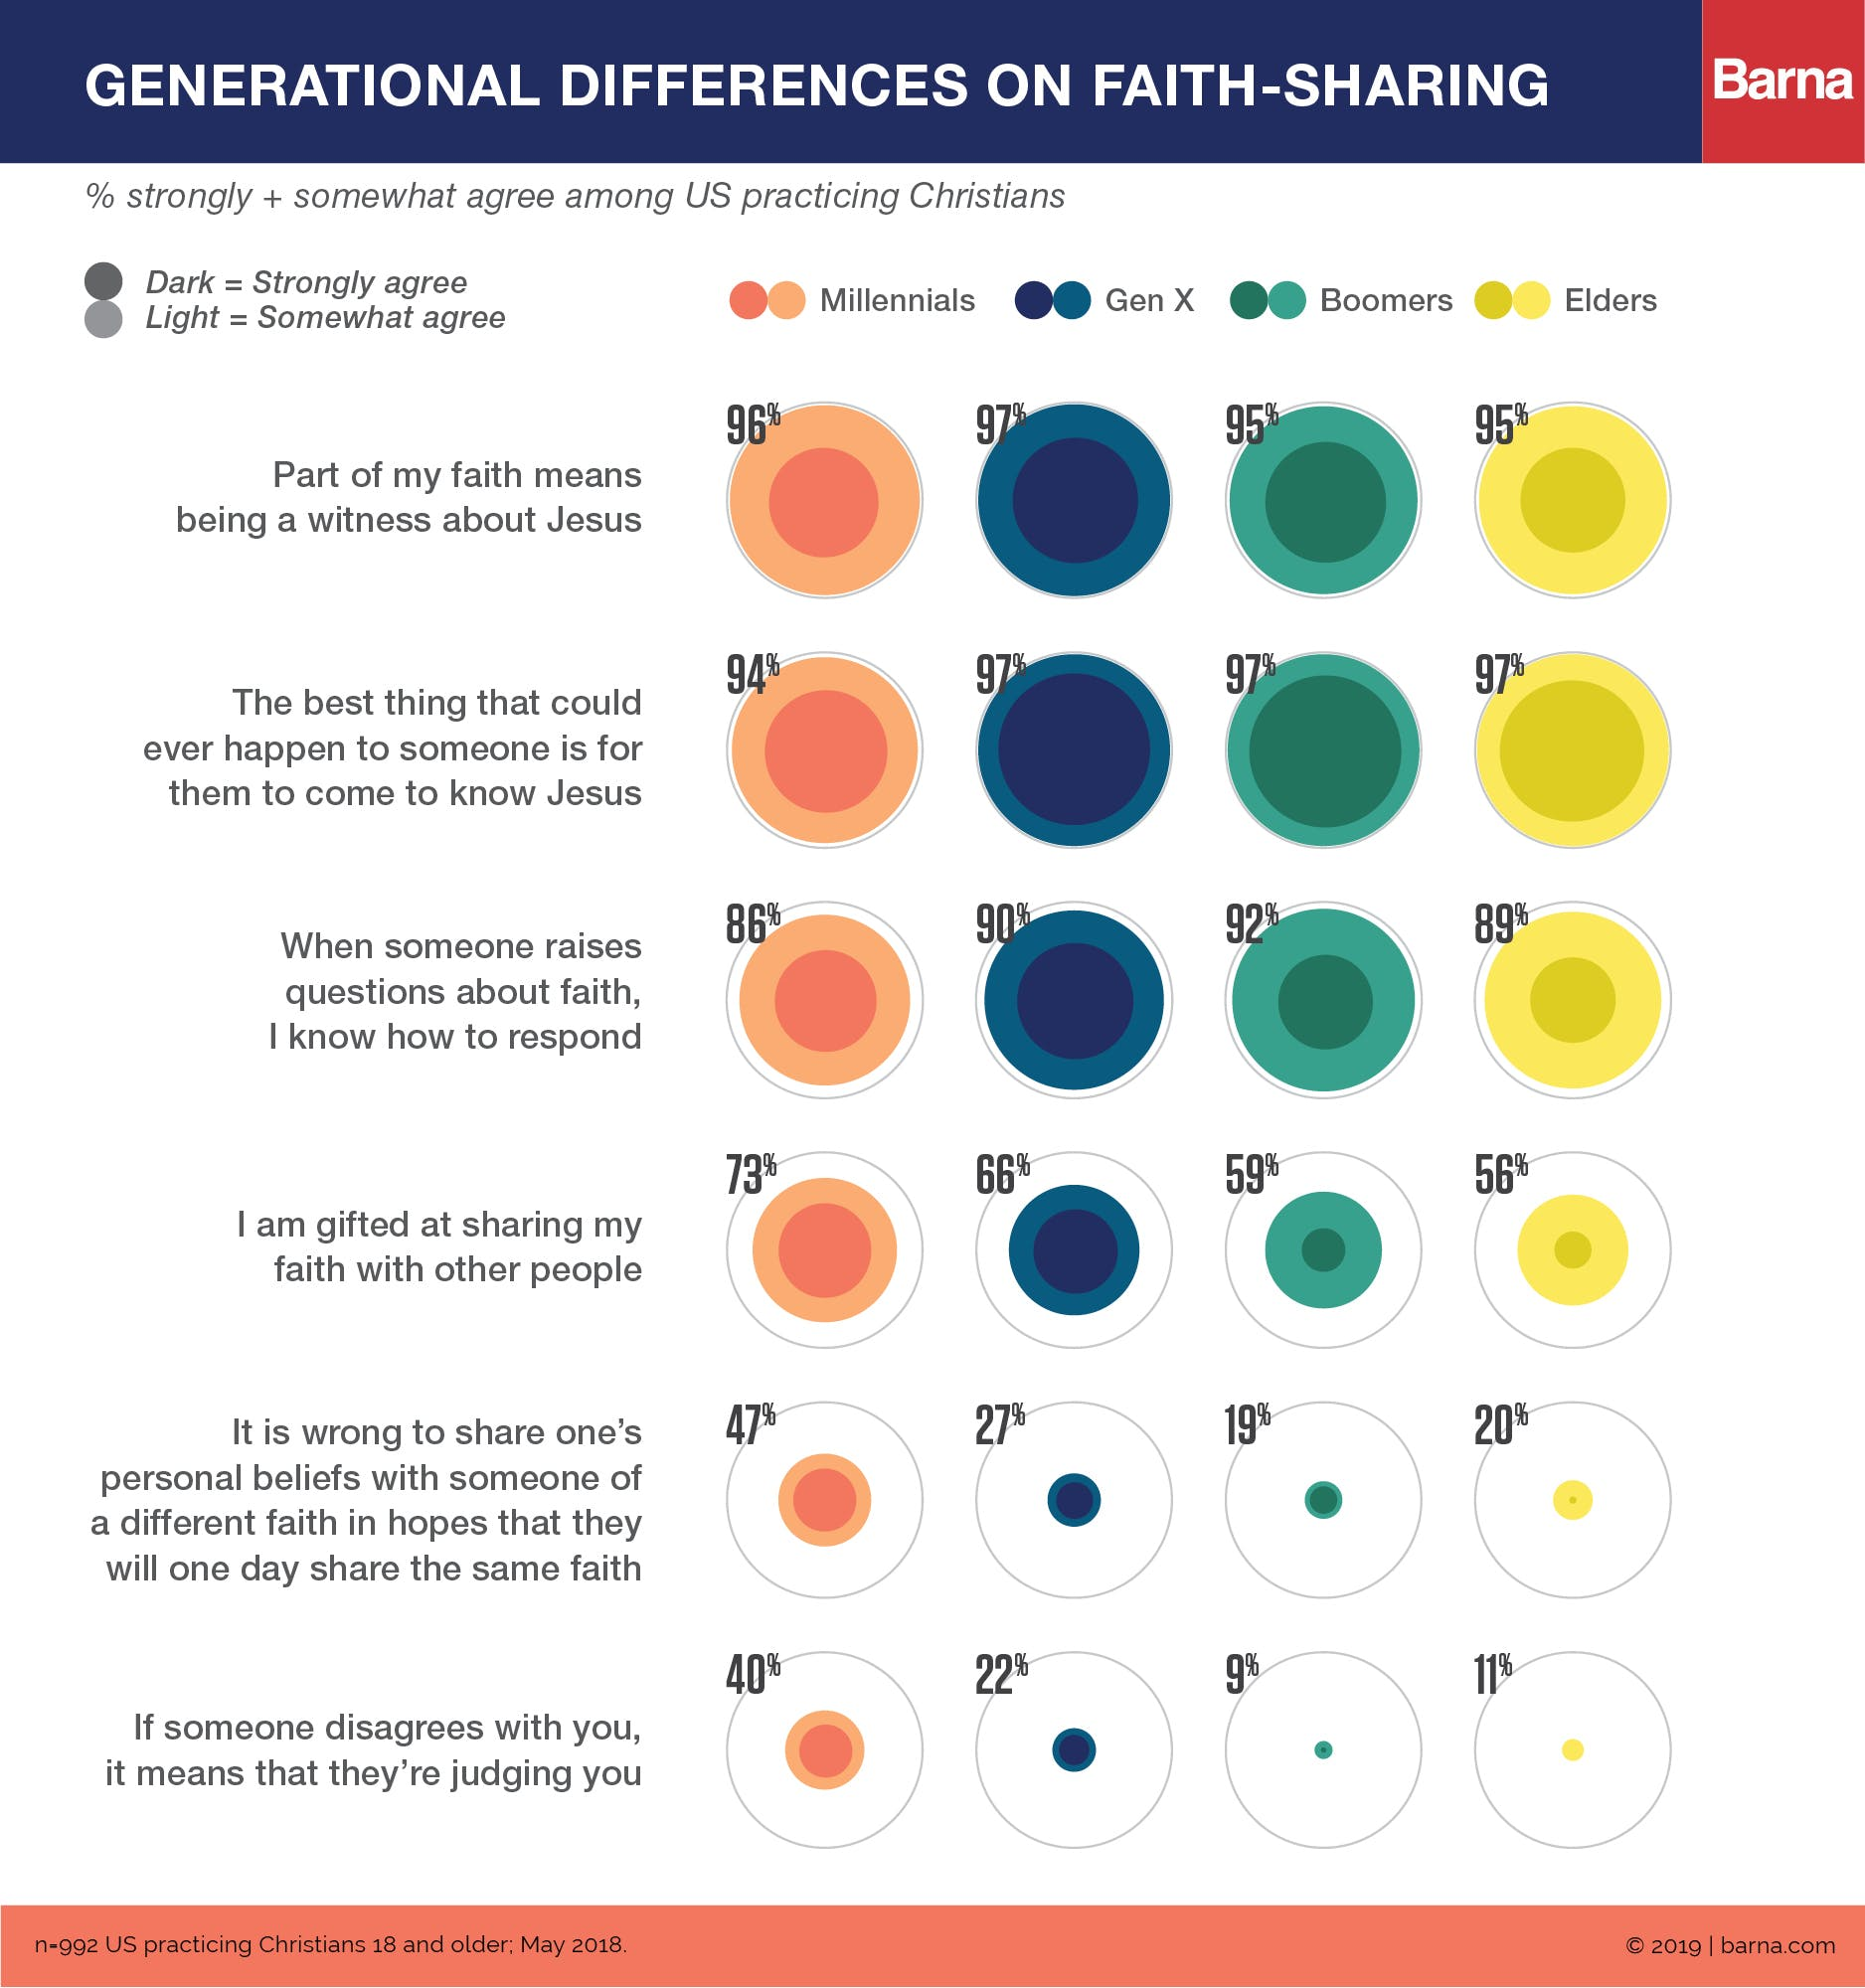 Almost Half of Practicing Christian Millennials Say Evangelism Is Wrong